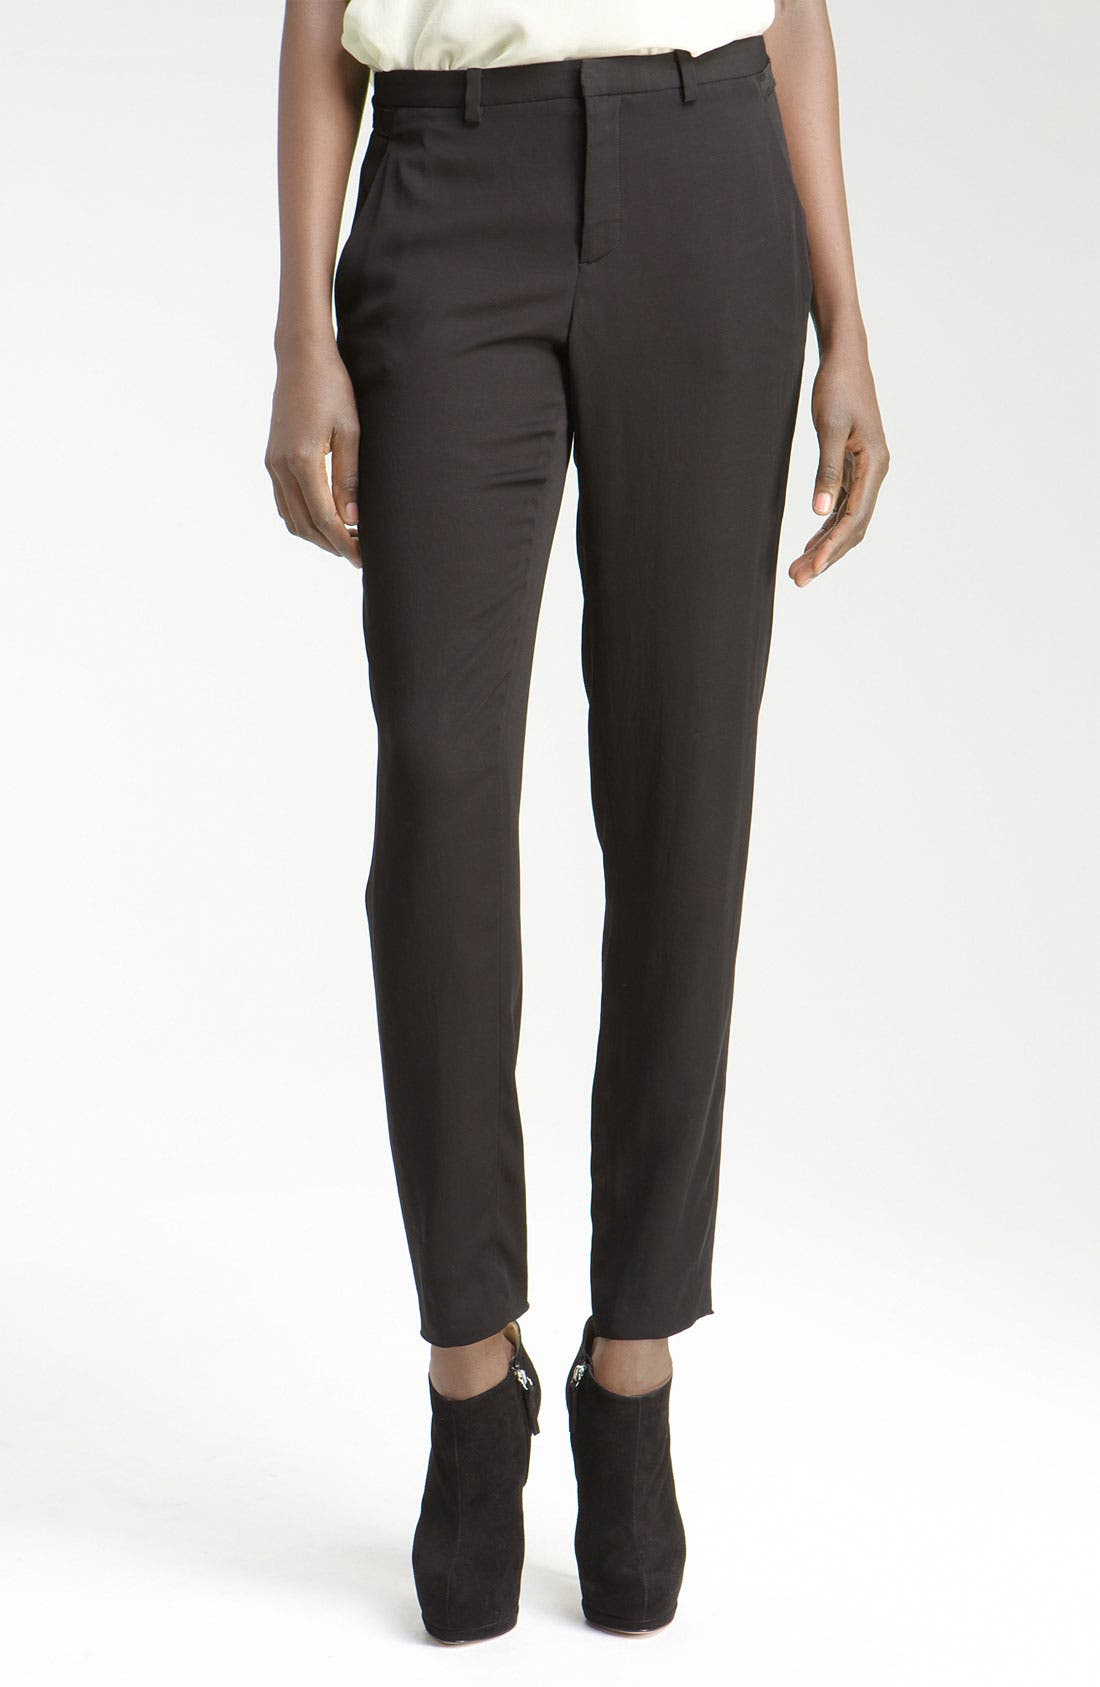 Alternate Image 1 Selected - Helmut Lang 'Method' Pants